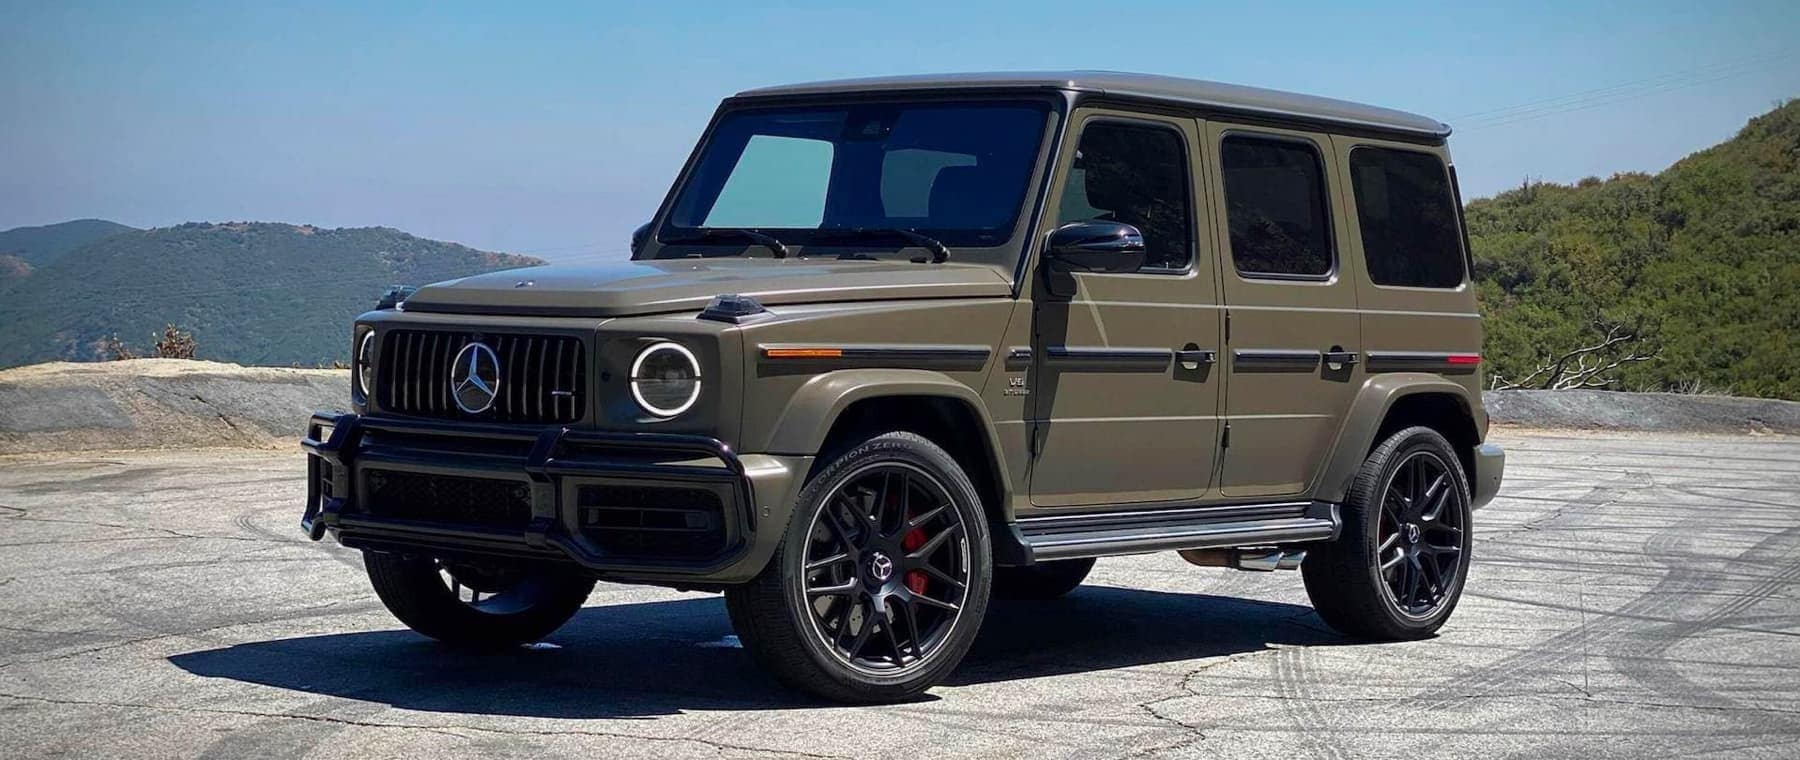 Green Mercedes-Benz G-Wagon on concrete with brushy hills in the background